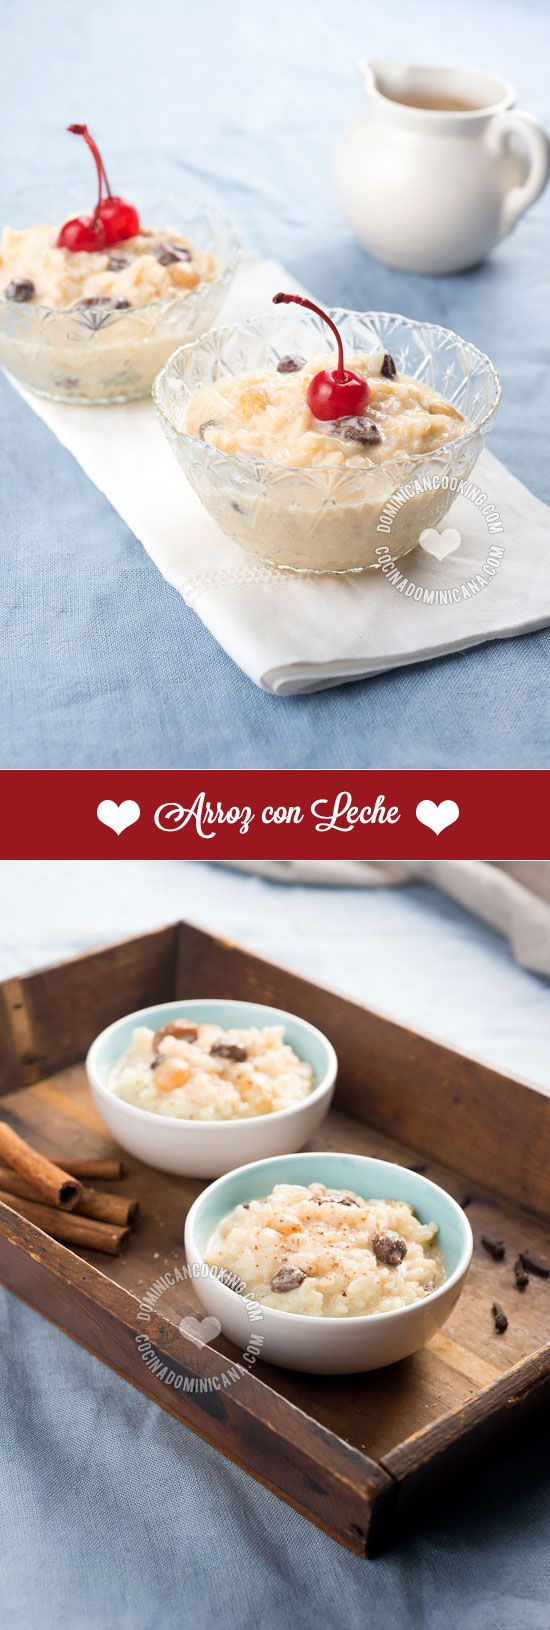 Arroz con Leche Recipe (Rice Pudding): There are many versions, but the Dominican one, with its heavenly mix of spices, stands out above the crowd.